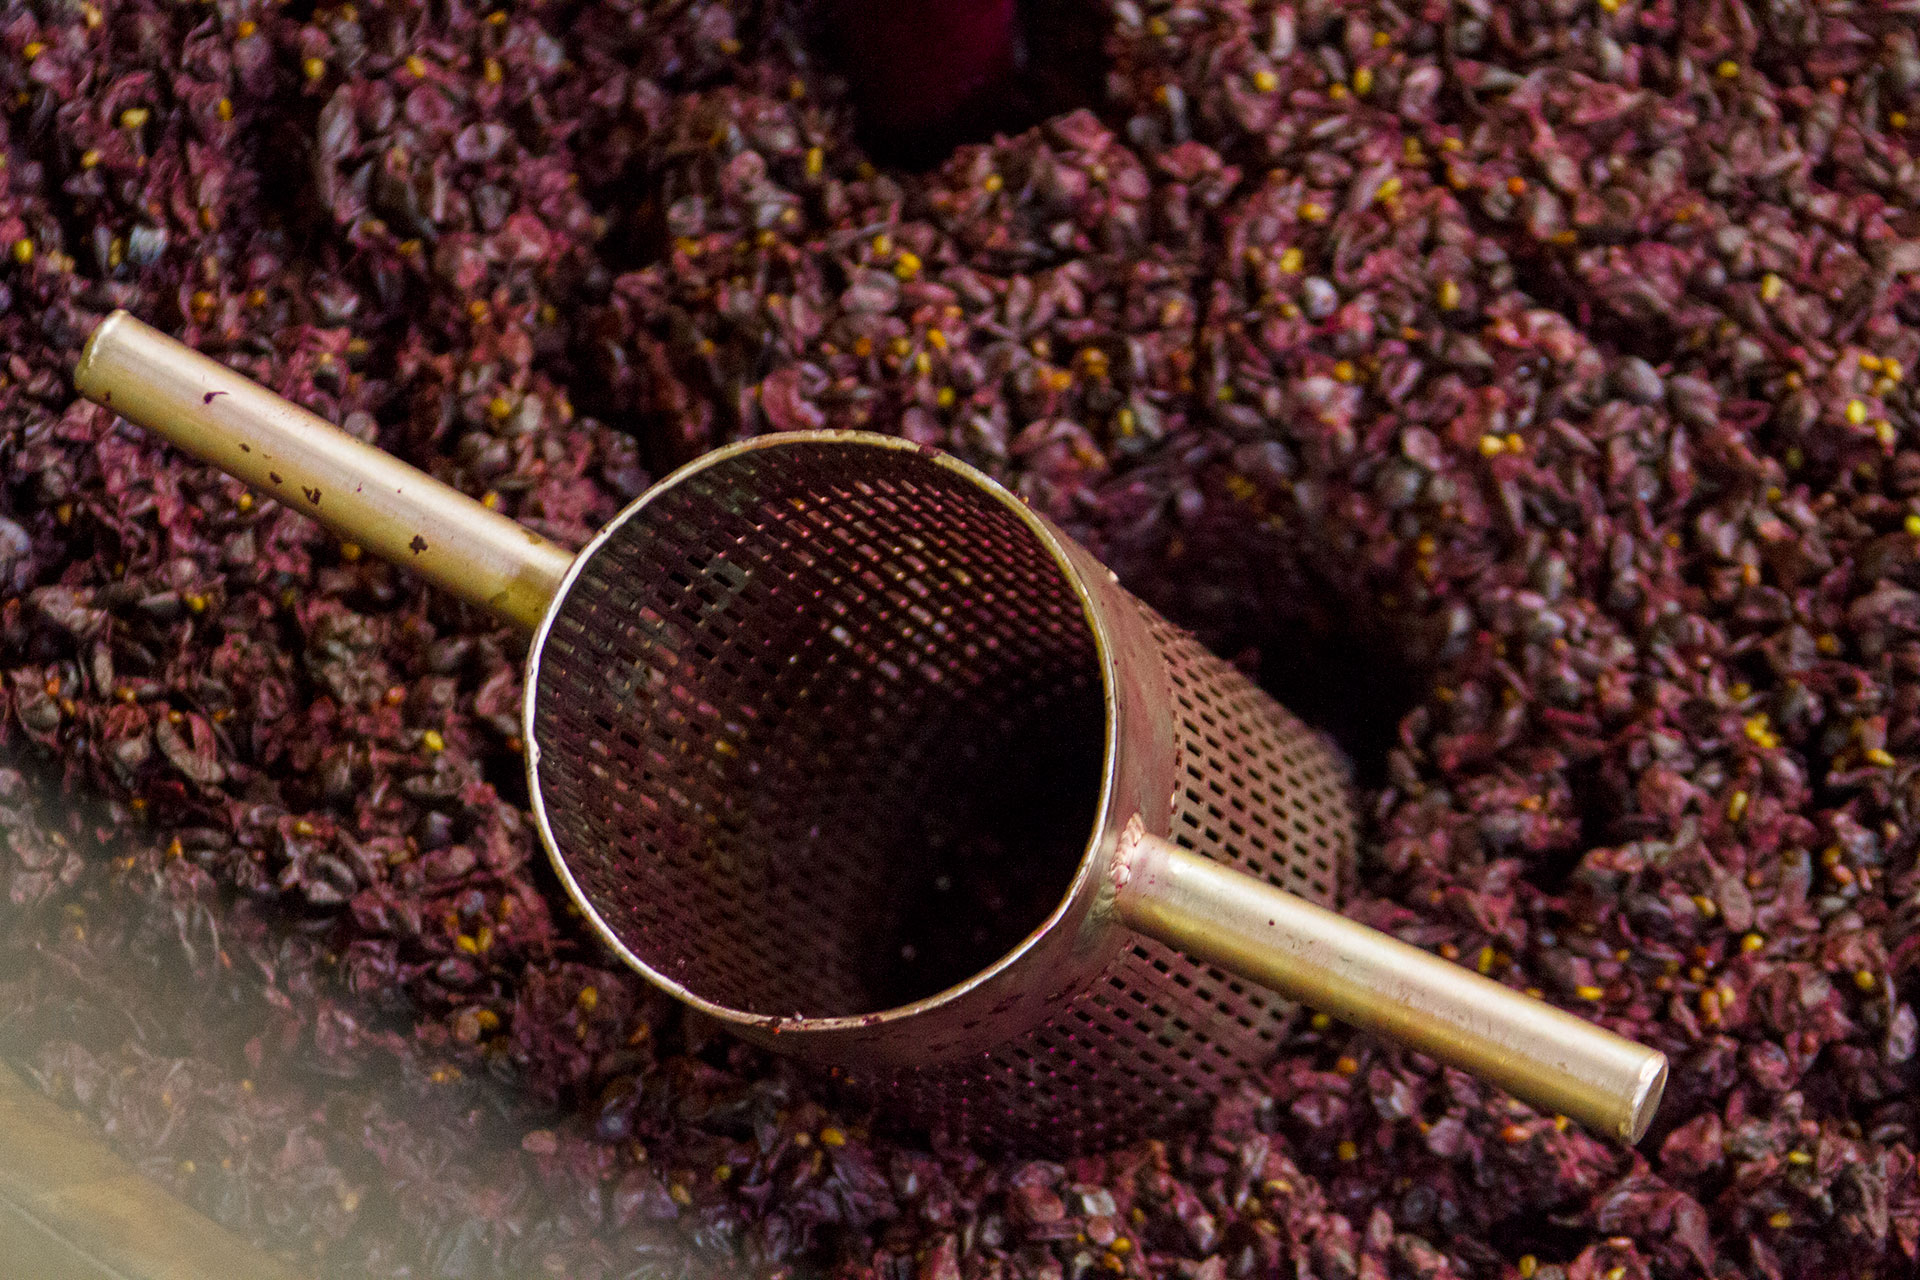 Winemaking: Punching